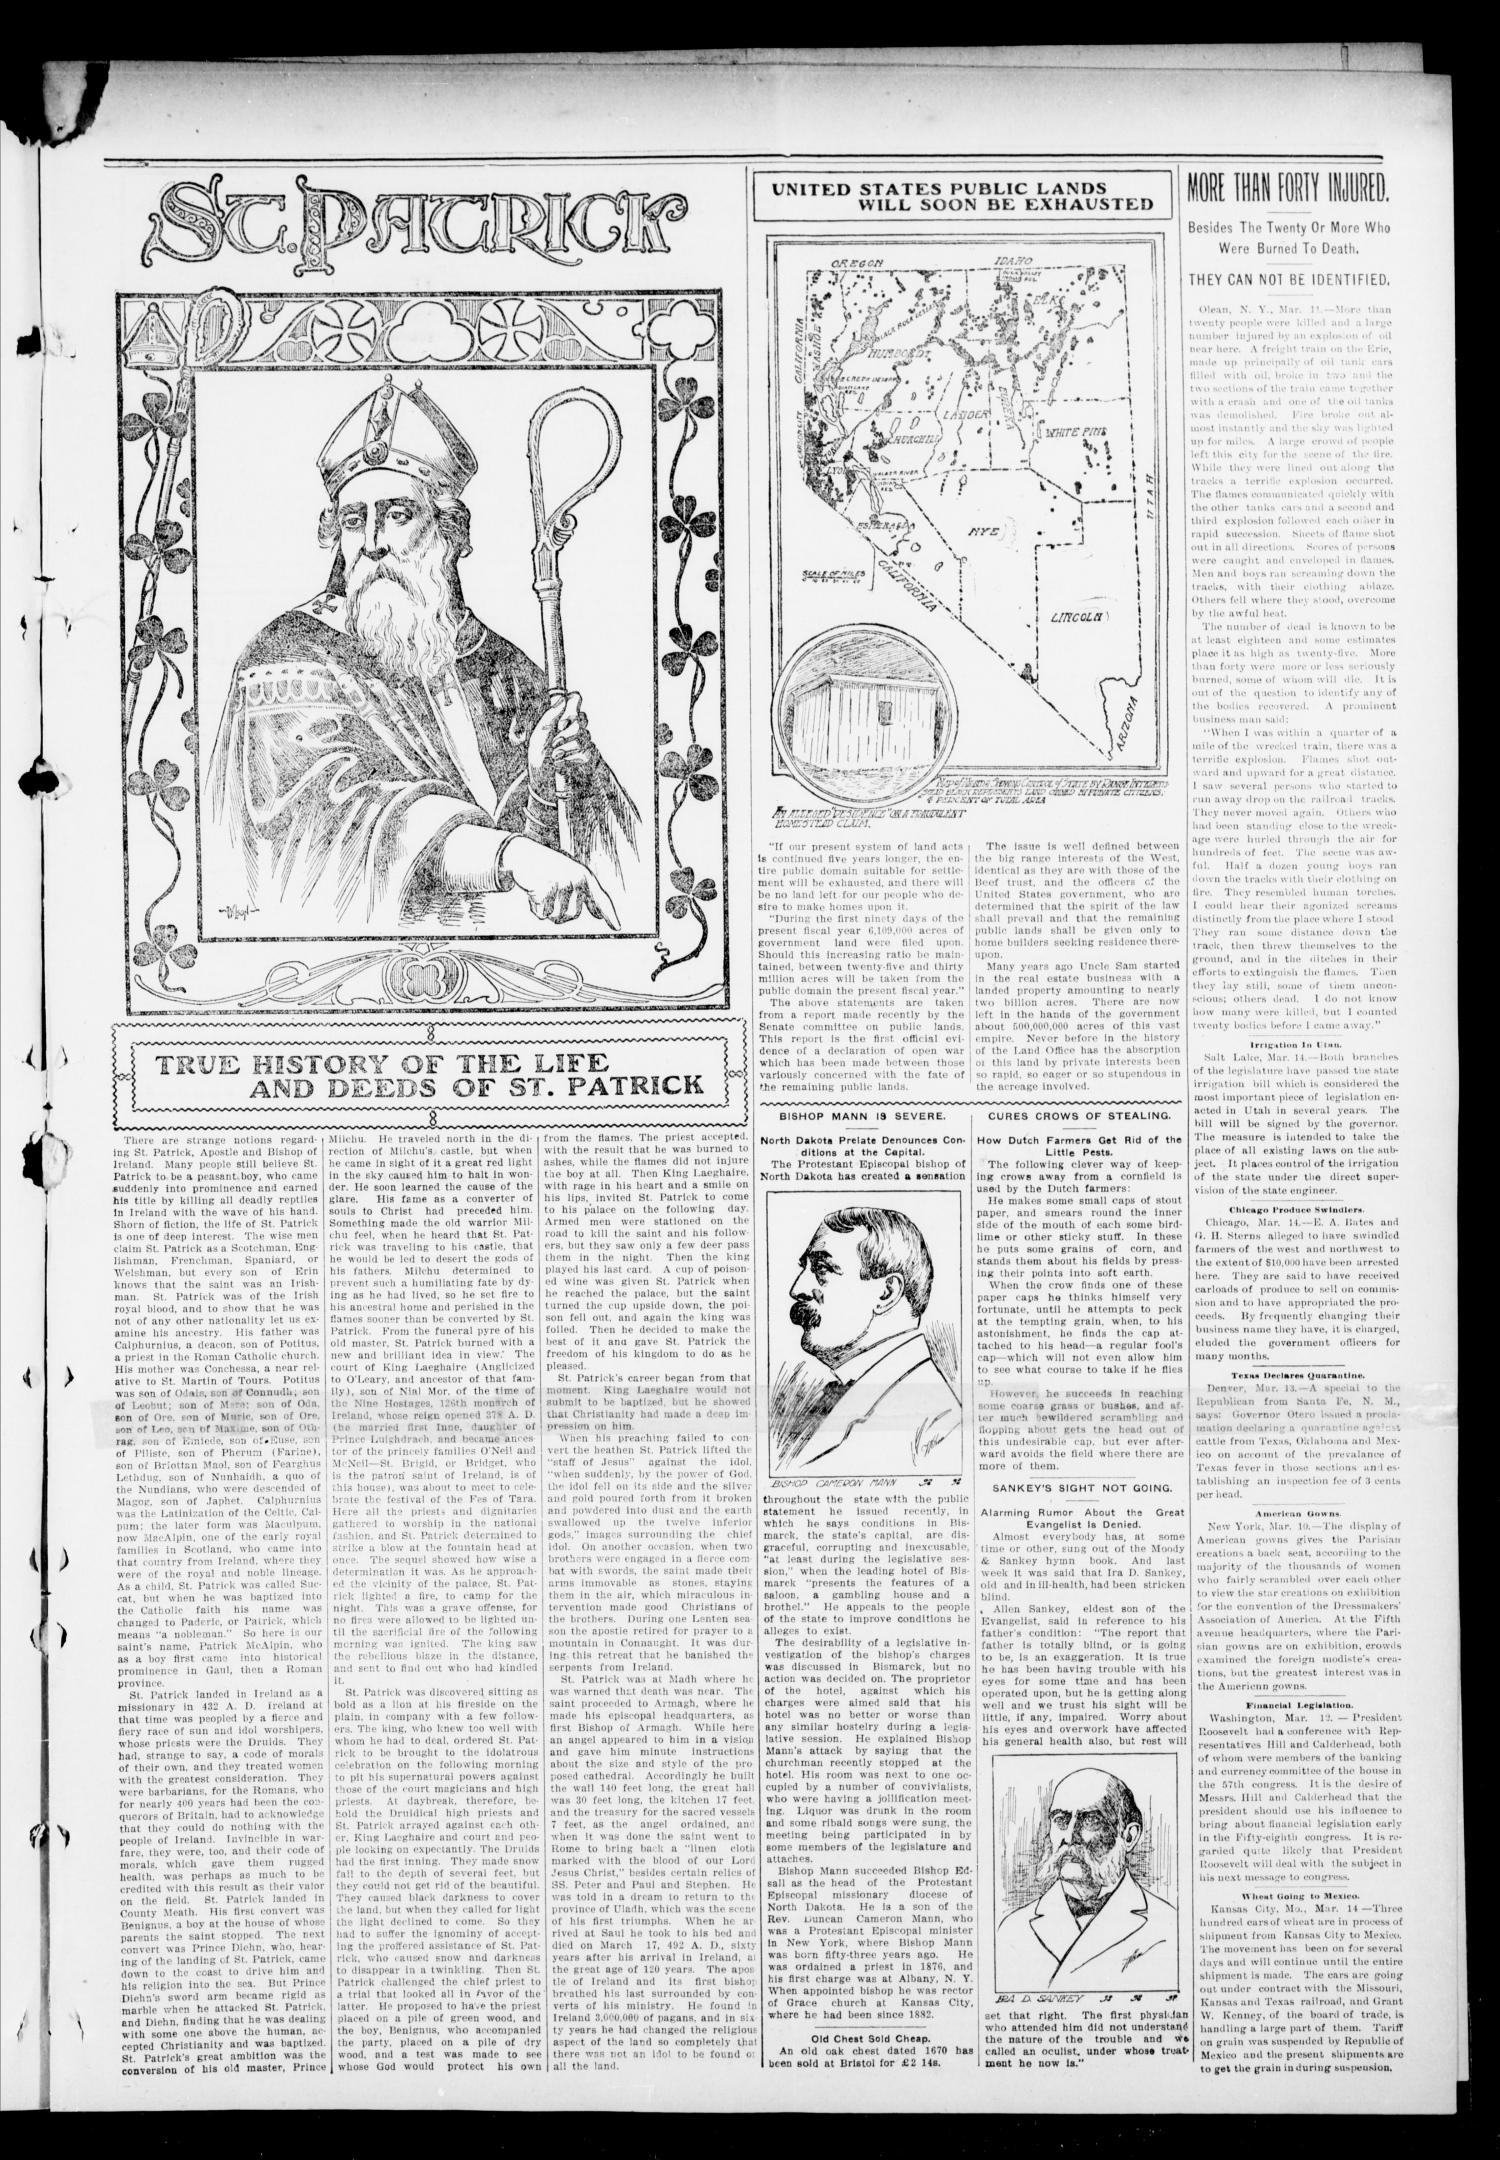 The Press-Democrat. (Hennessey, Okla.), Vol. 11, No. 25, Ed. 1 Friday, March 20, 1903                                                                                                      [Sequence #]: 3 of 8